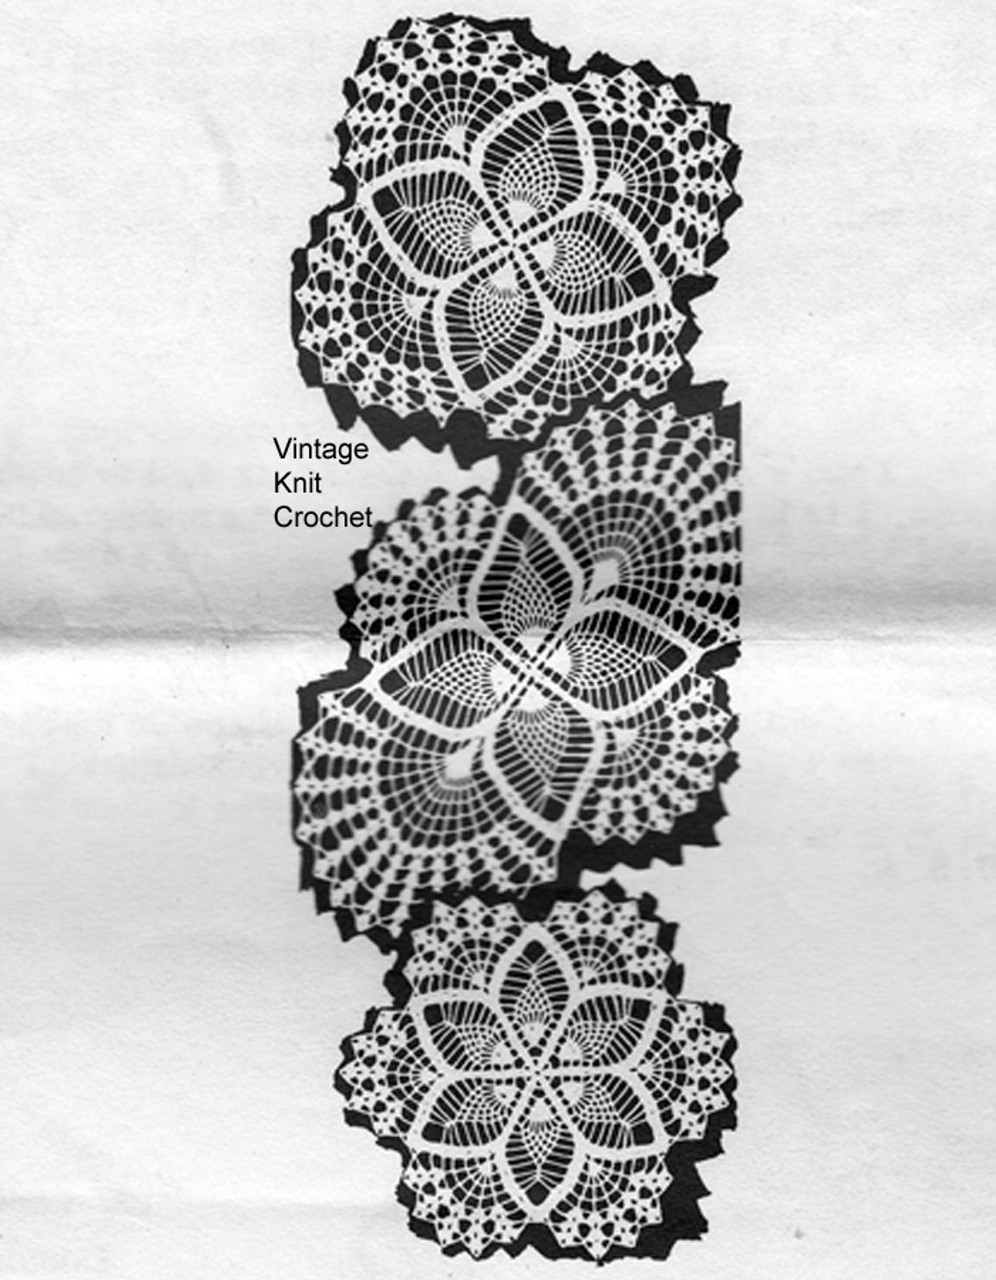 Vintage Crocheted Pineapple Doilies, Mail Order Design 699